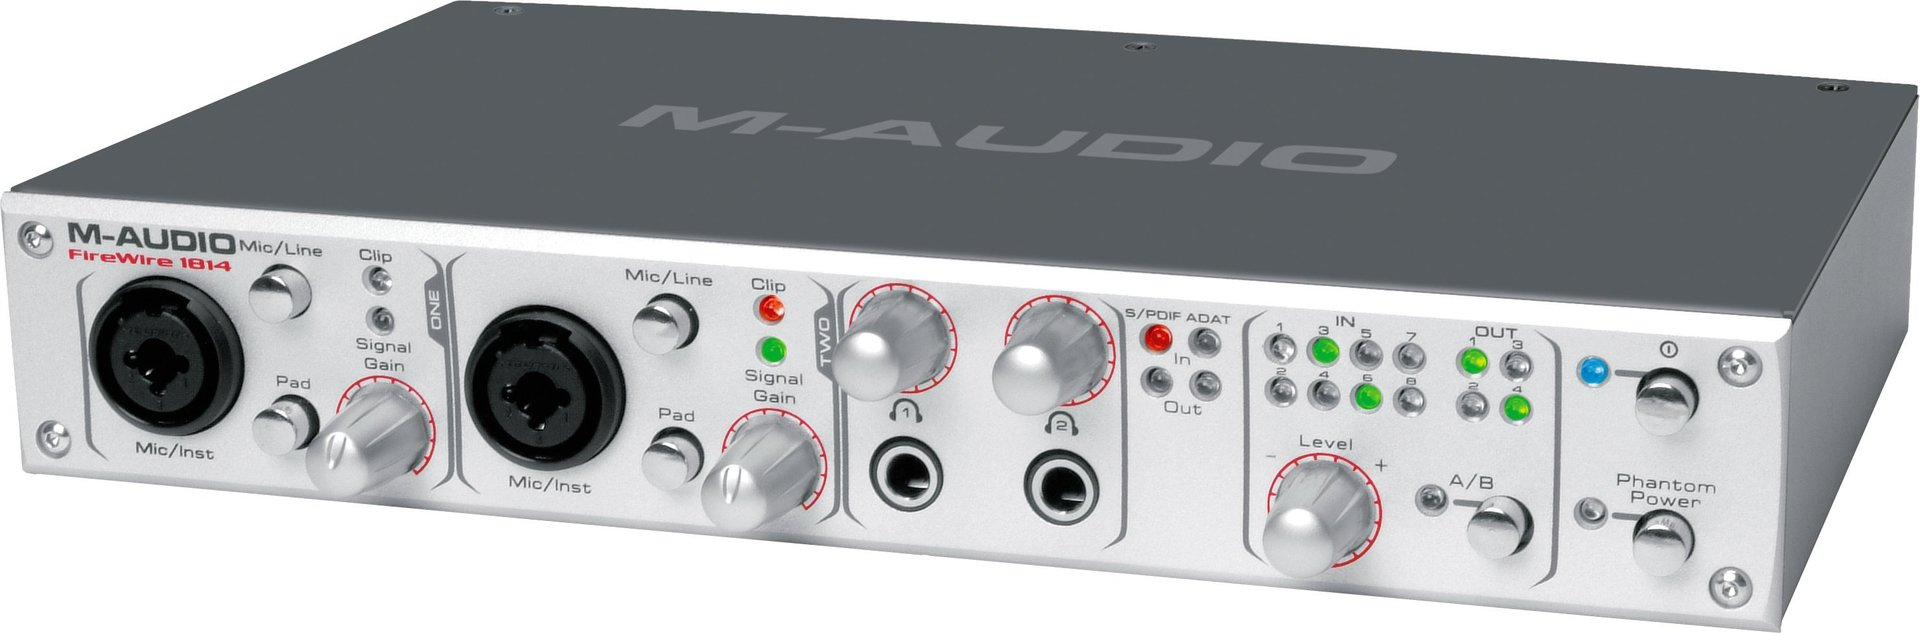 M-AUDIO - FIREWIRE 1814 - AUDIO INTERFACE